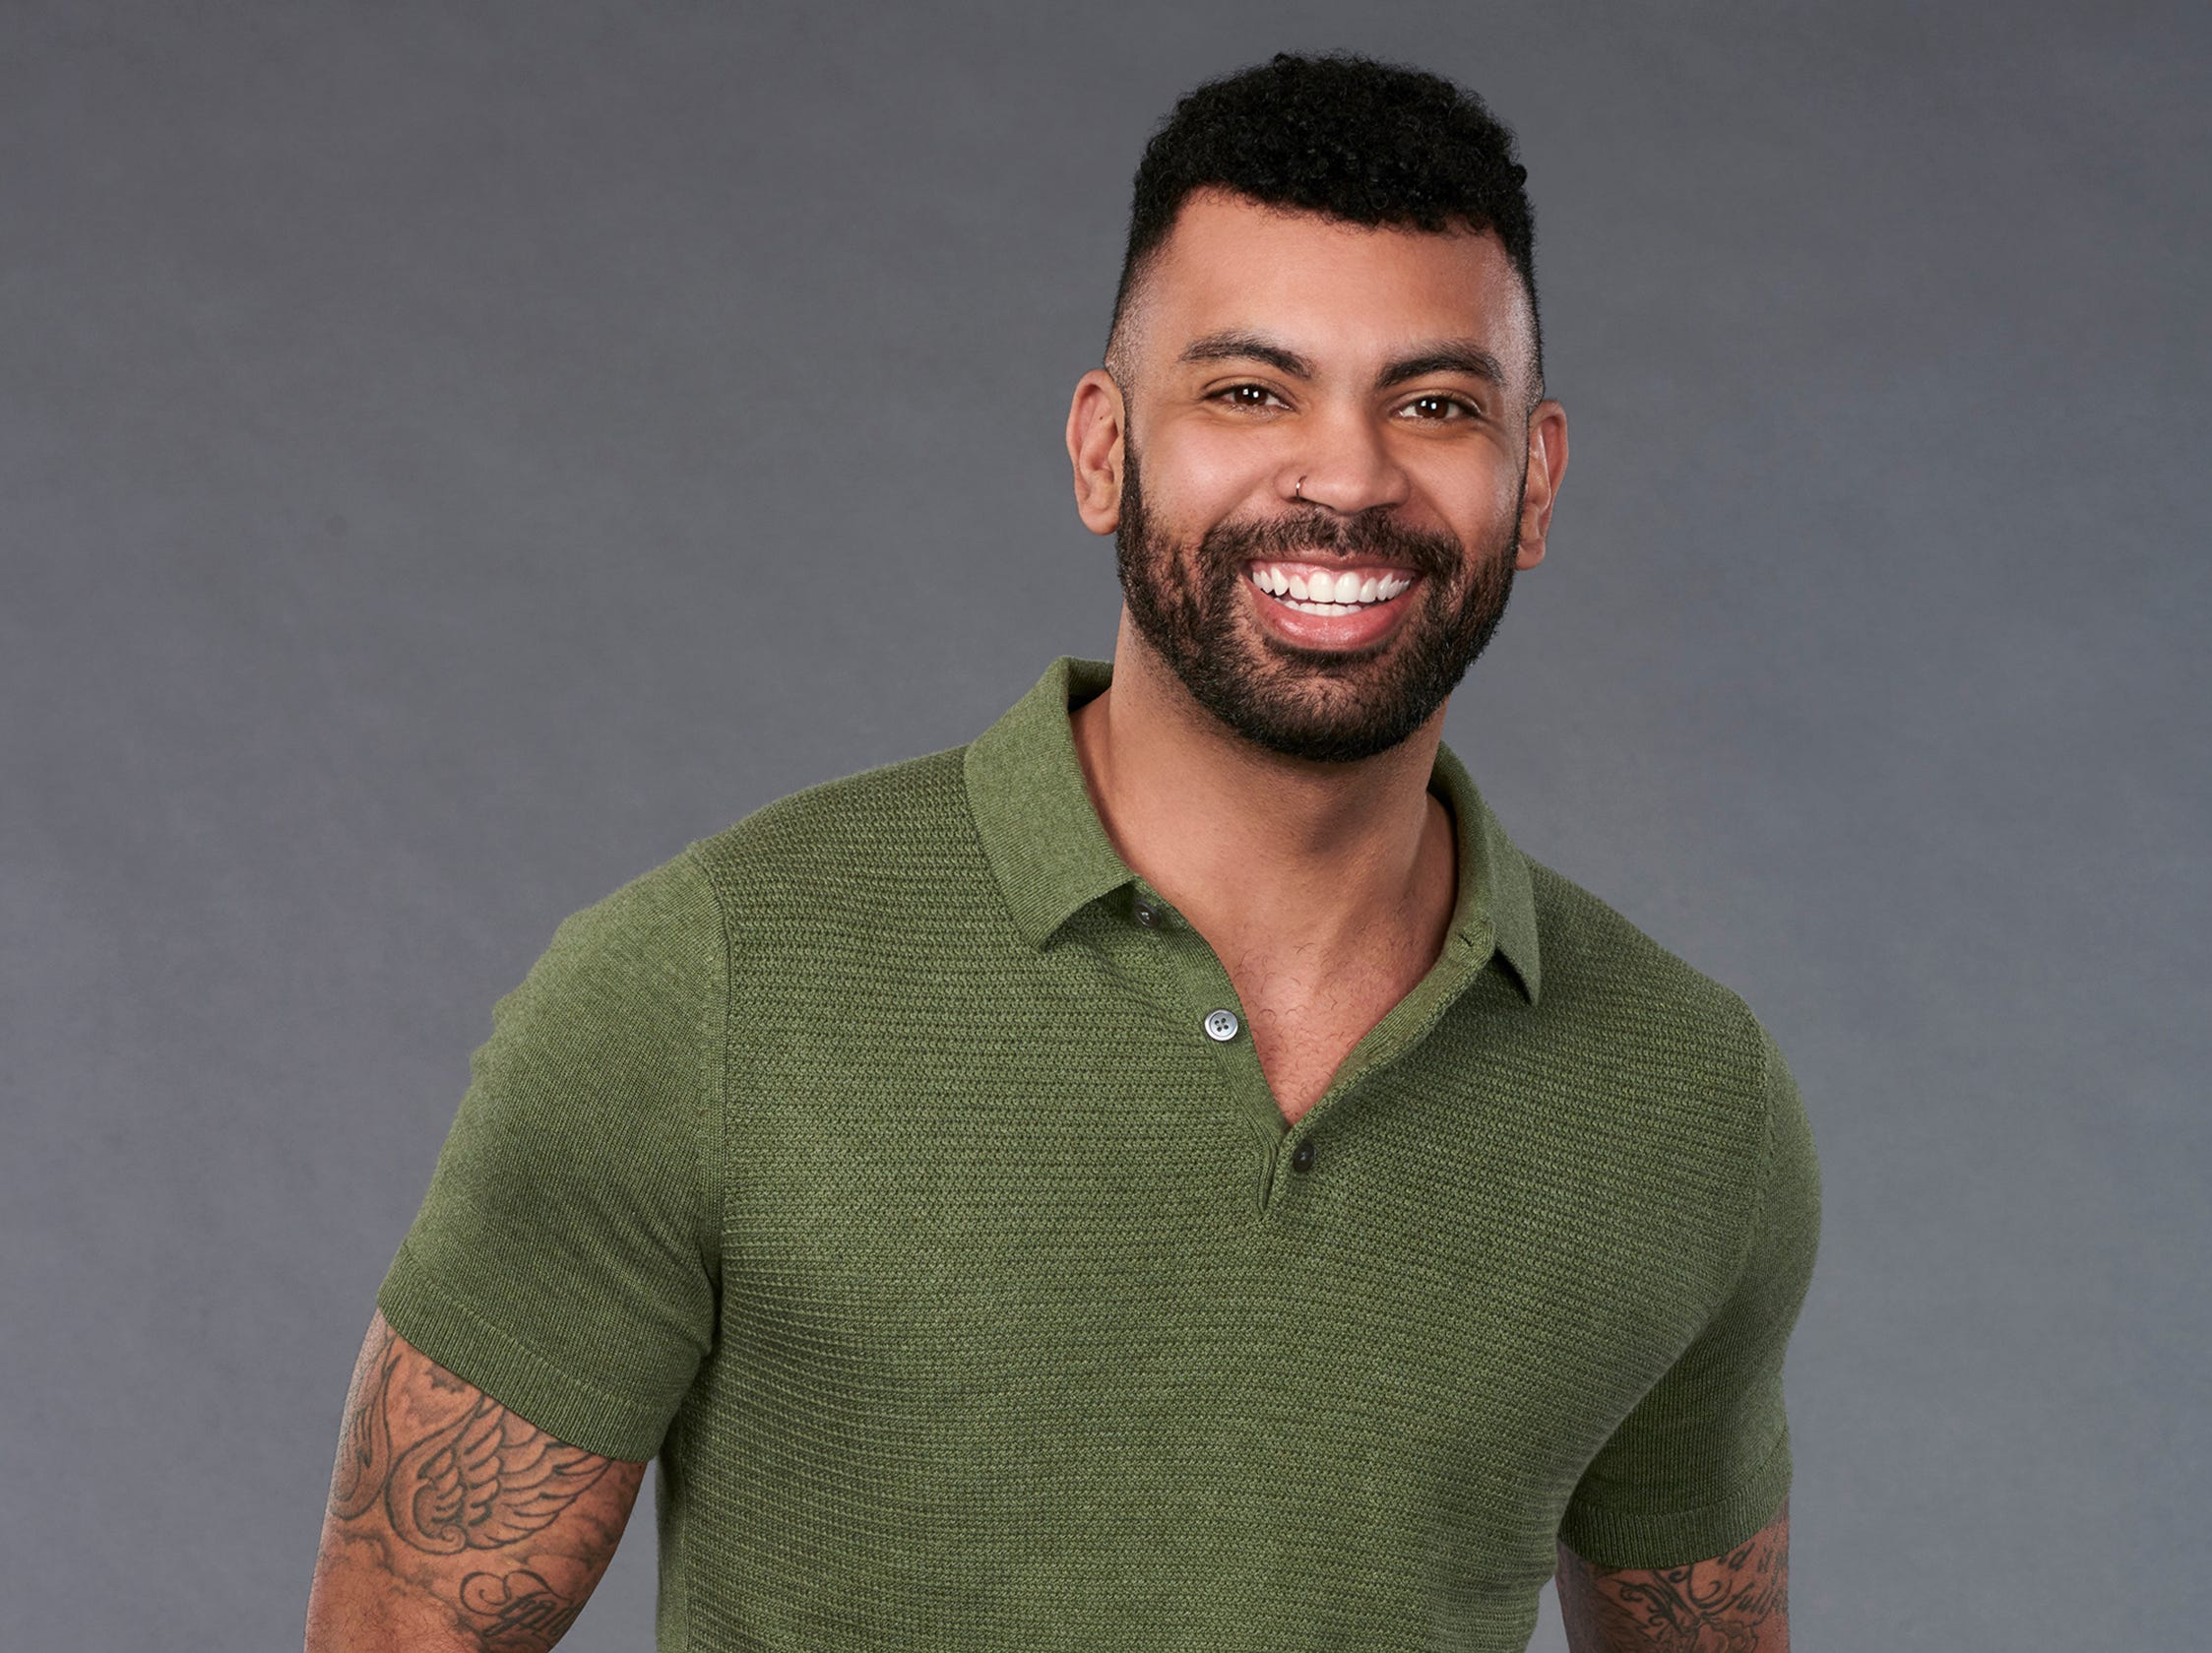 """The Bachelorette"" Season 23 contestant:  Dustin, 30, Chicago, real estate broker"